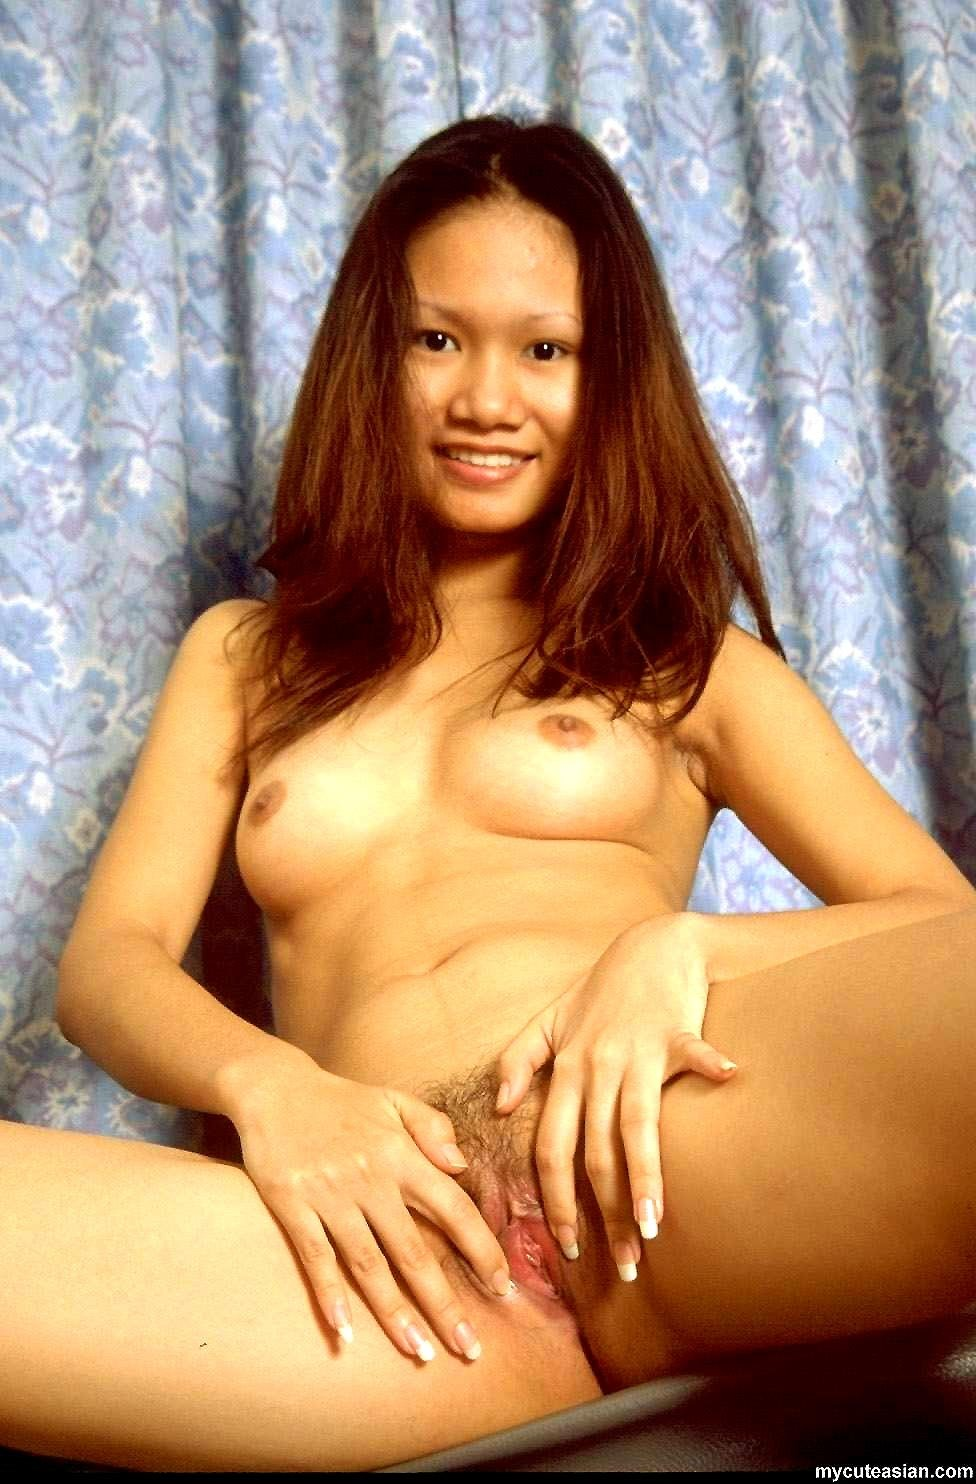 Milf natural tits tube #1